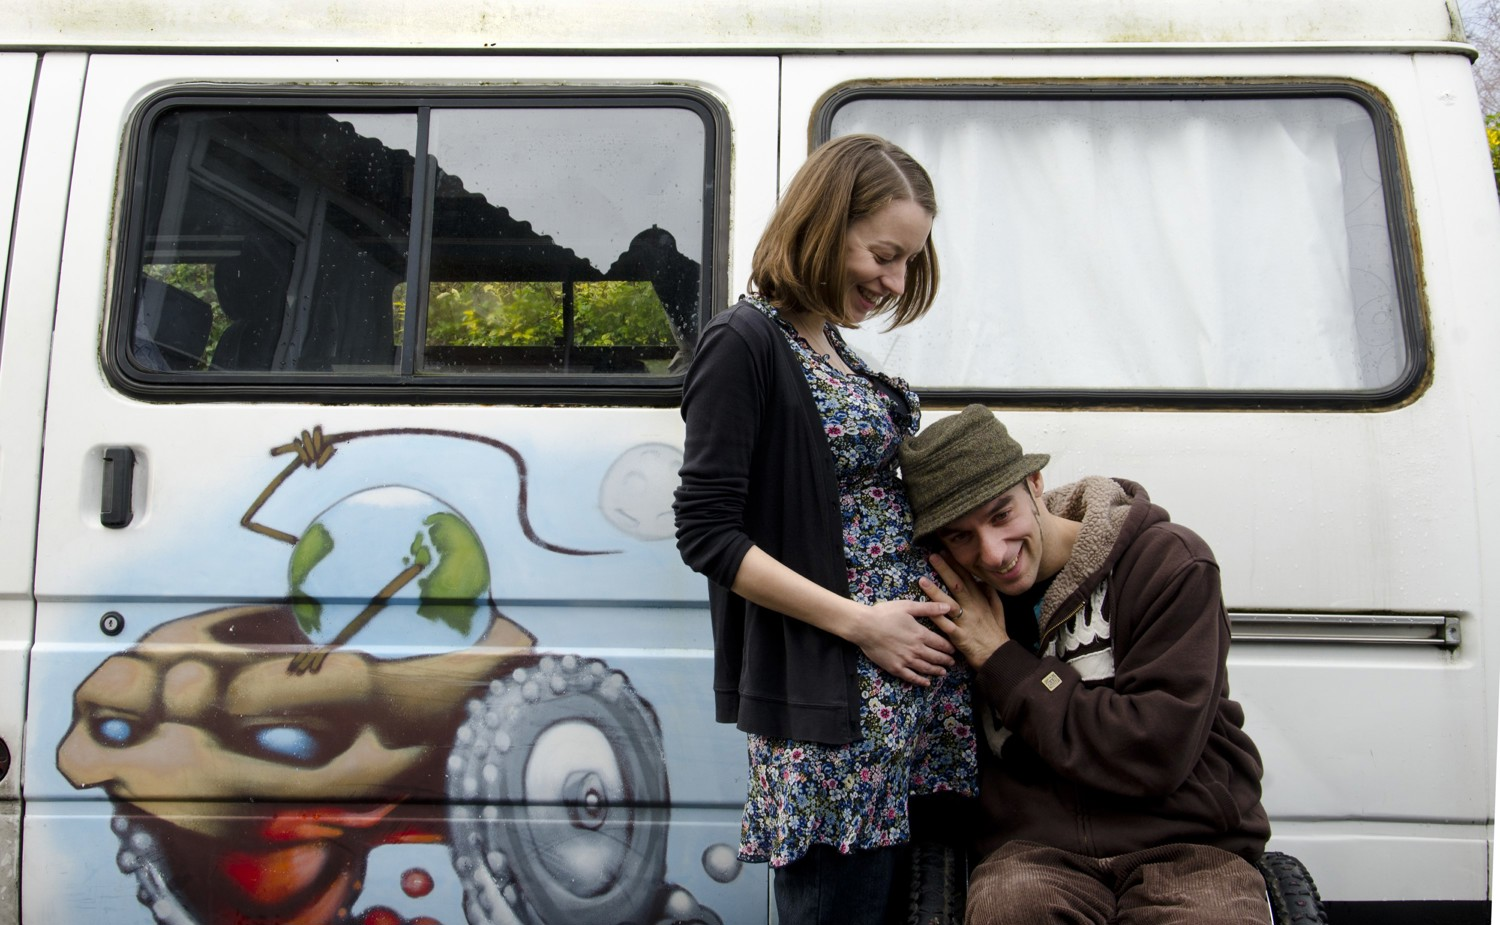 Rob and his pregnant partner next a painted campervan